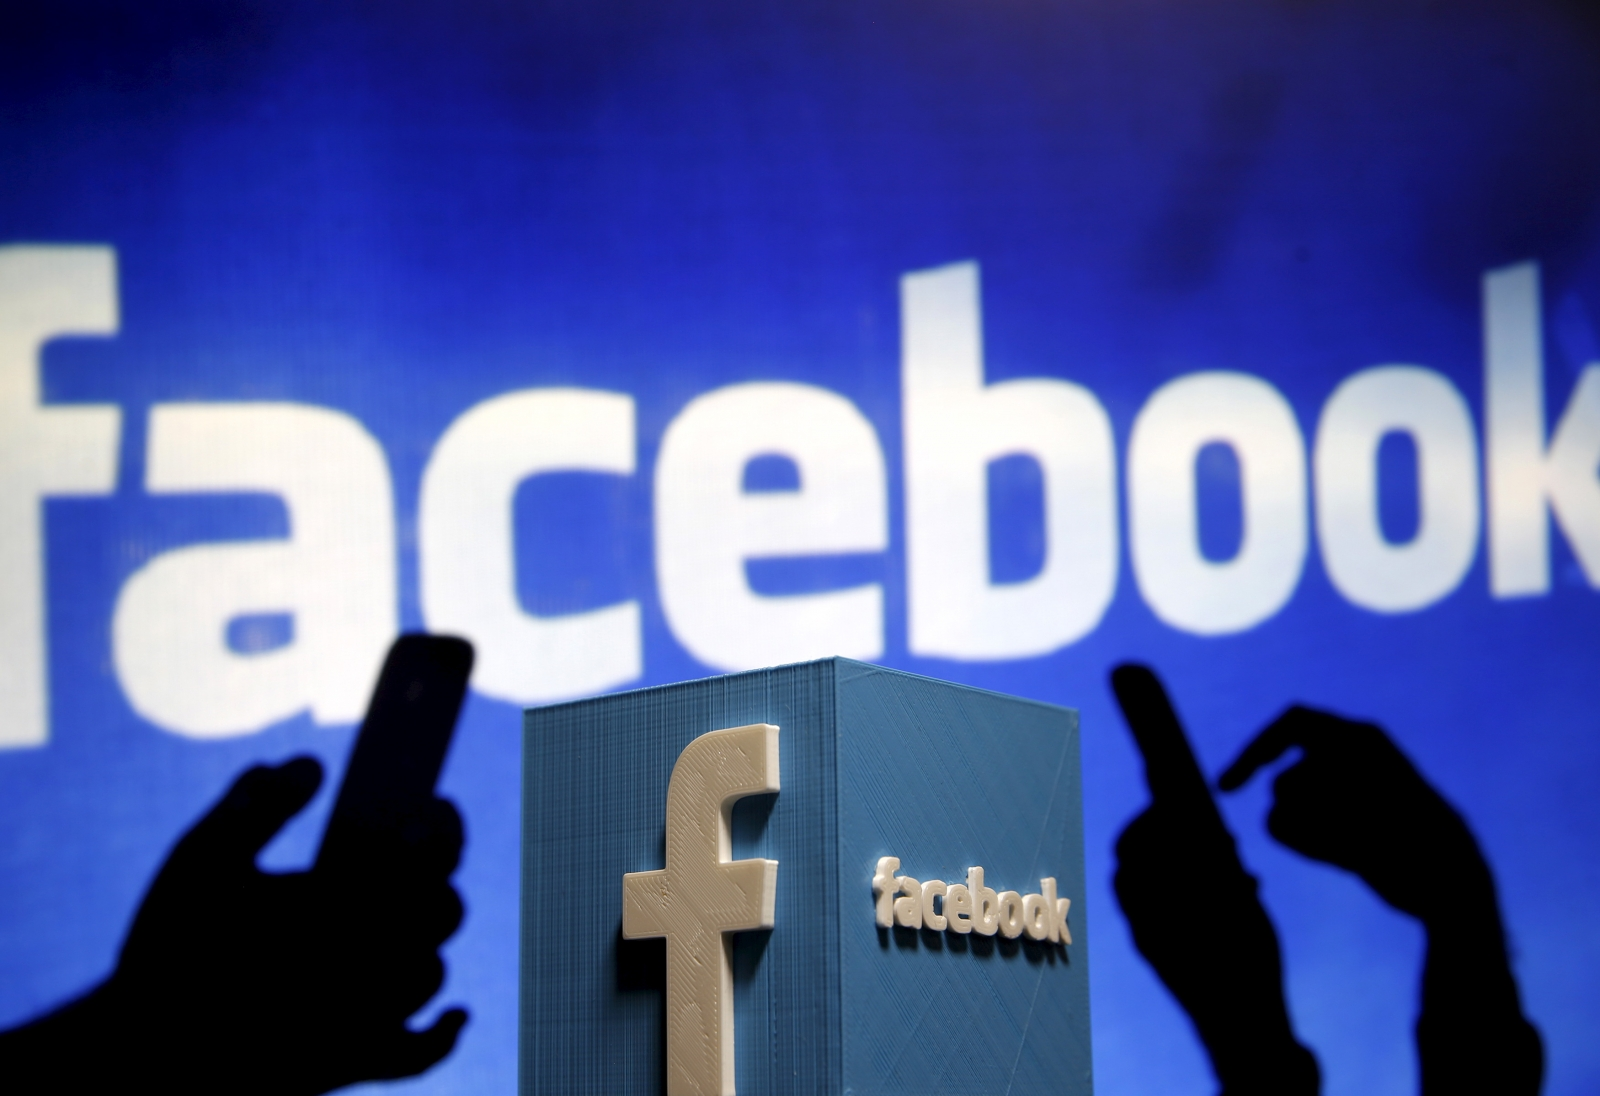 Facebook rolls out Pages Messaging feature as it moves closer to monetising Messenger